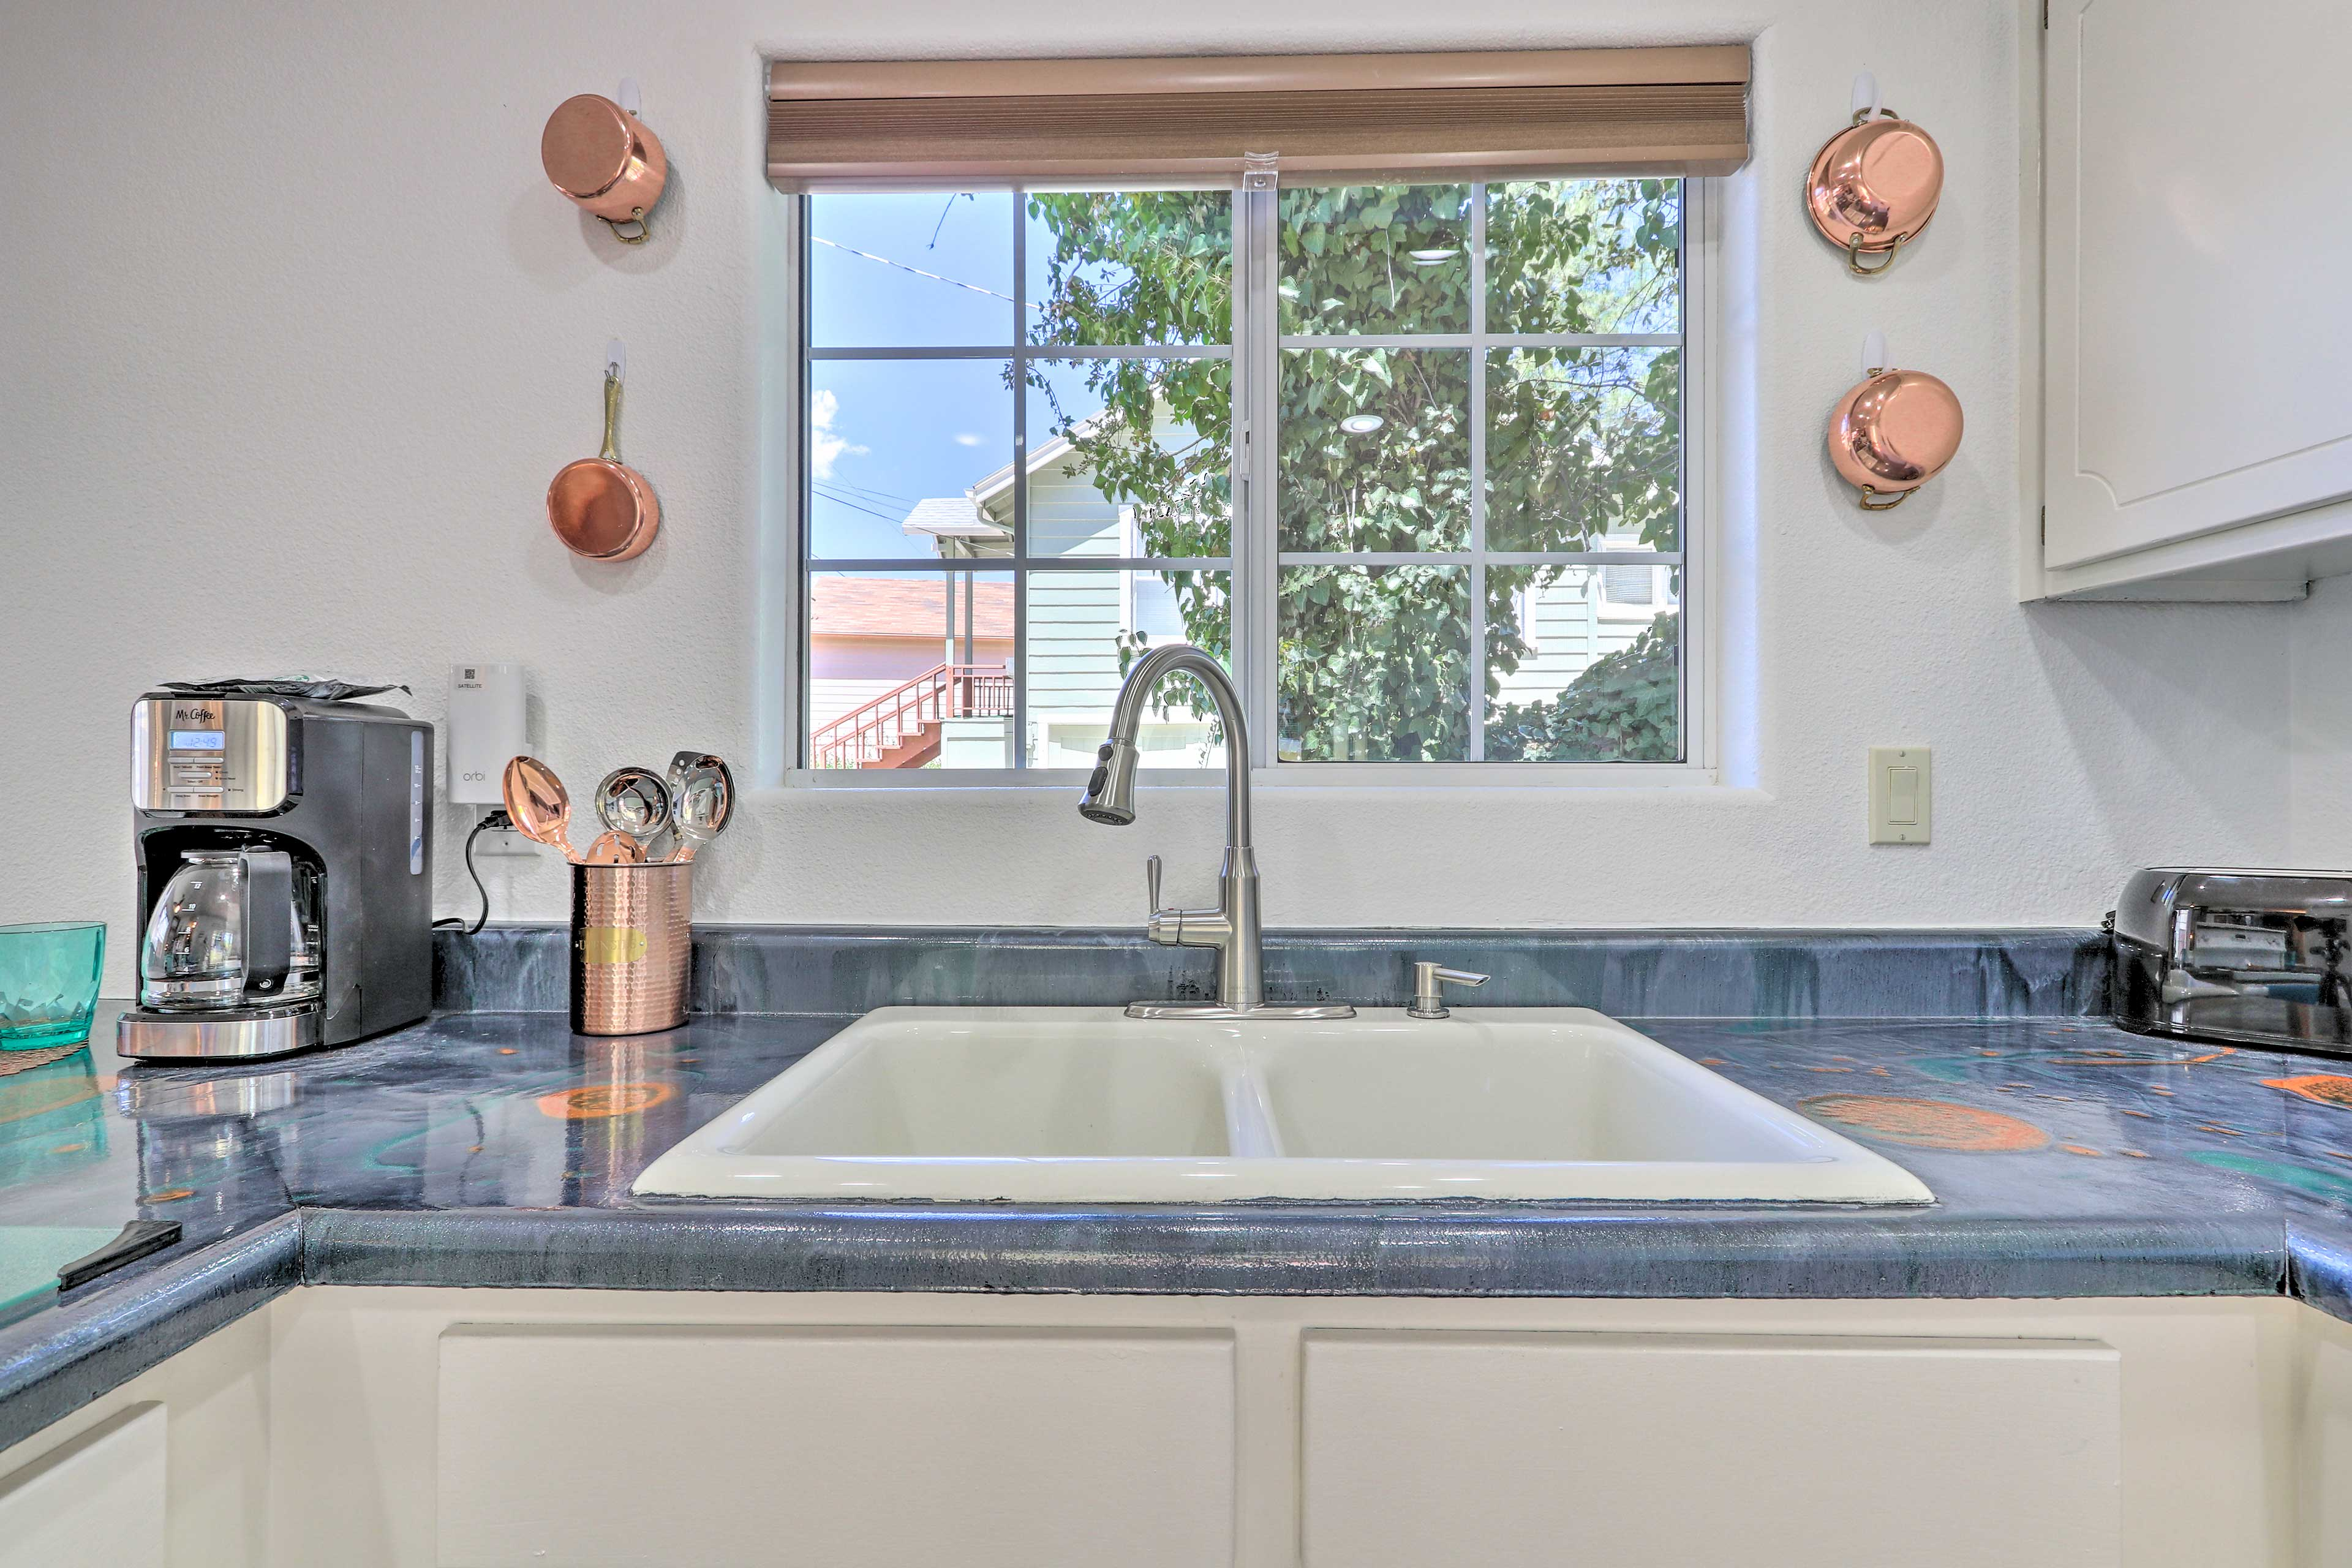 The countertops add a unique touch to the entire kitchen!